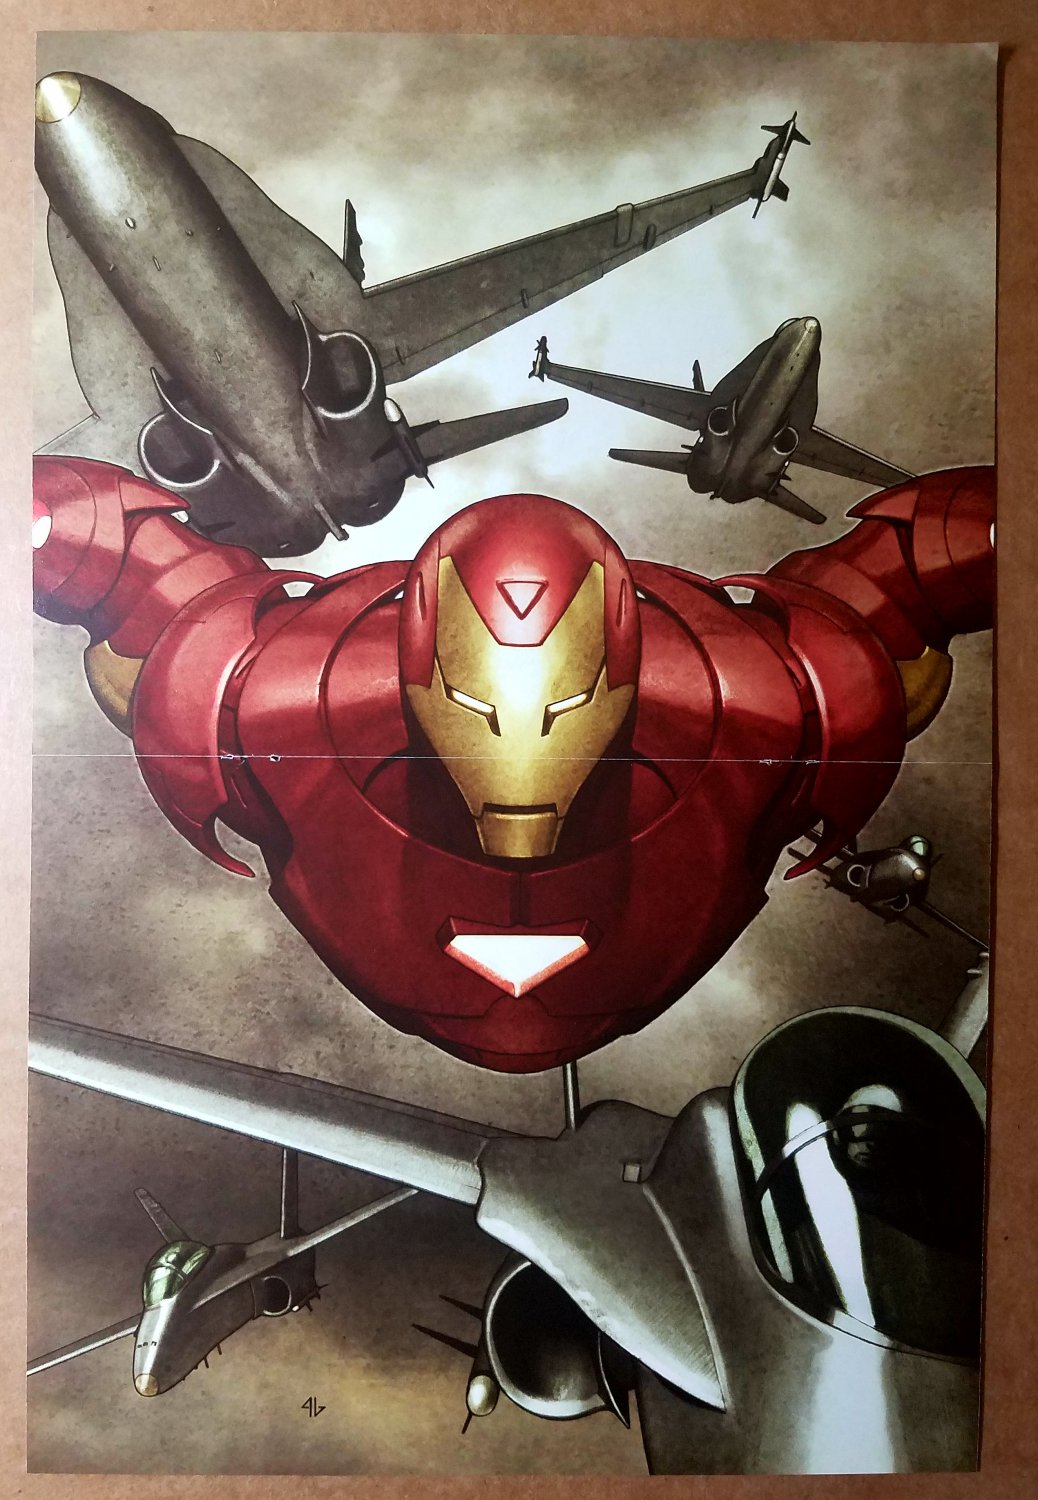 Iron Man flying with Jets Marvel Comic Poster by Adi Granov